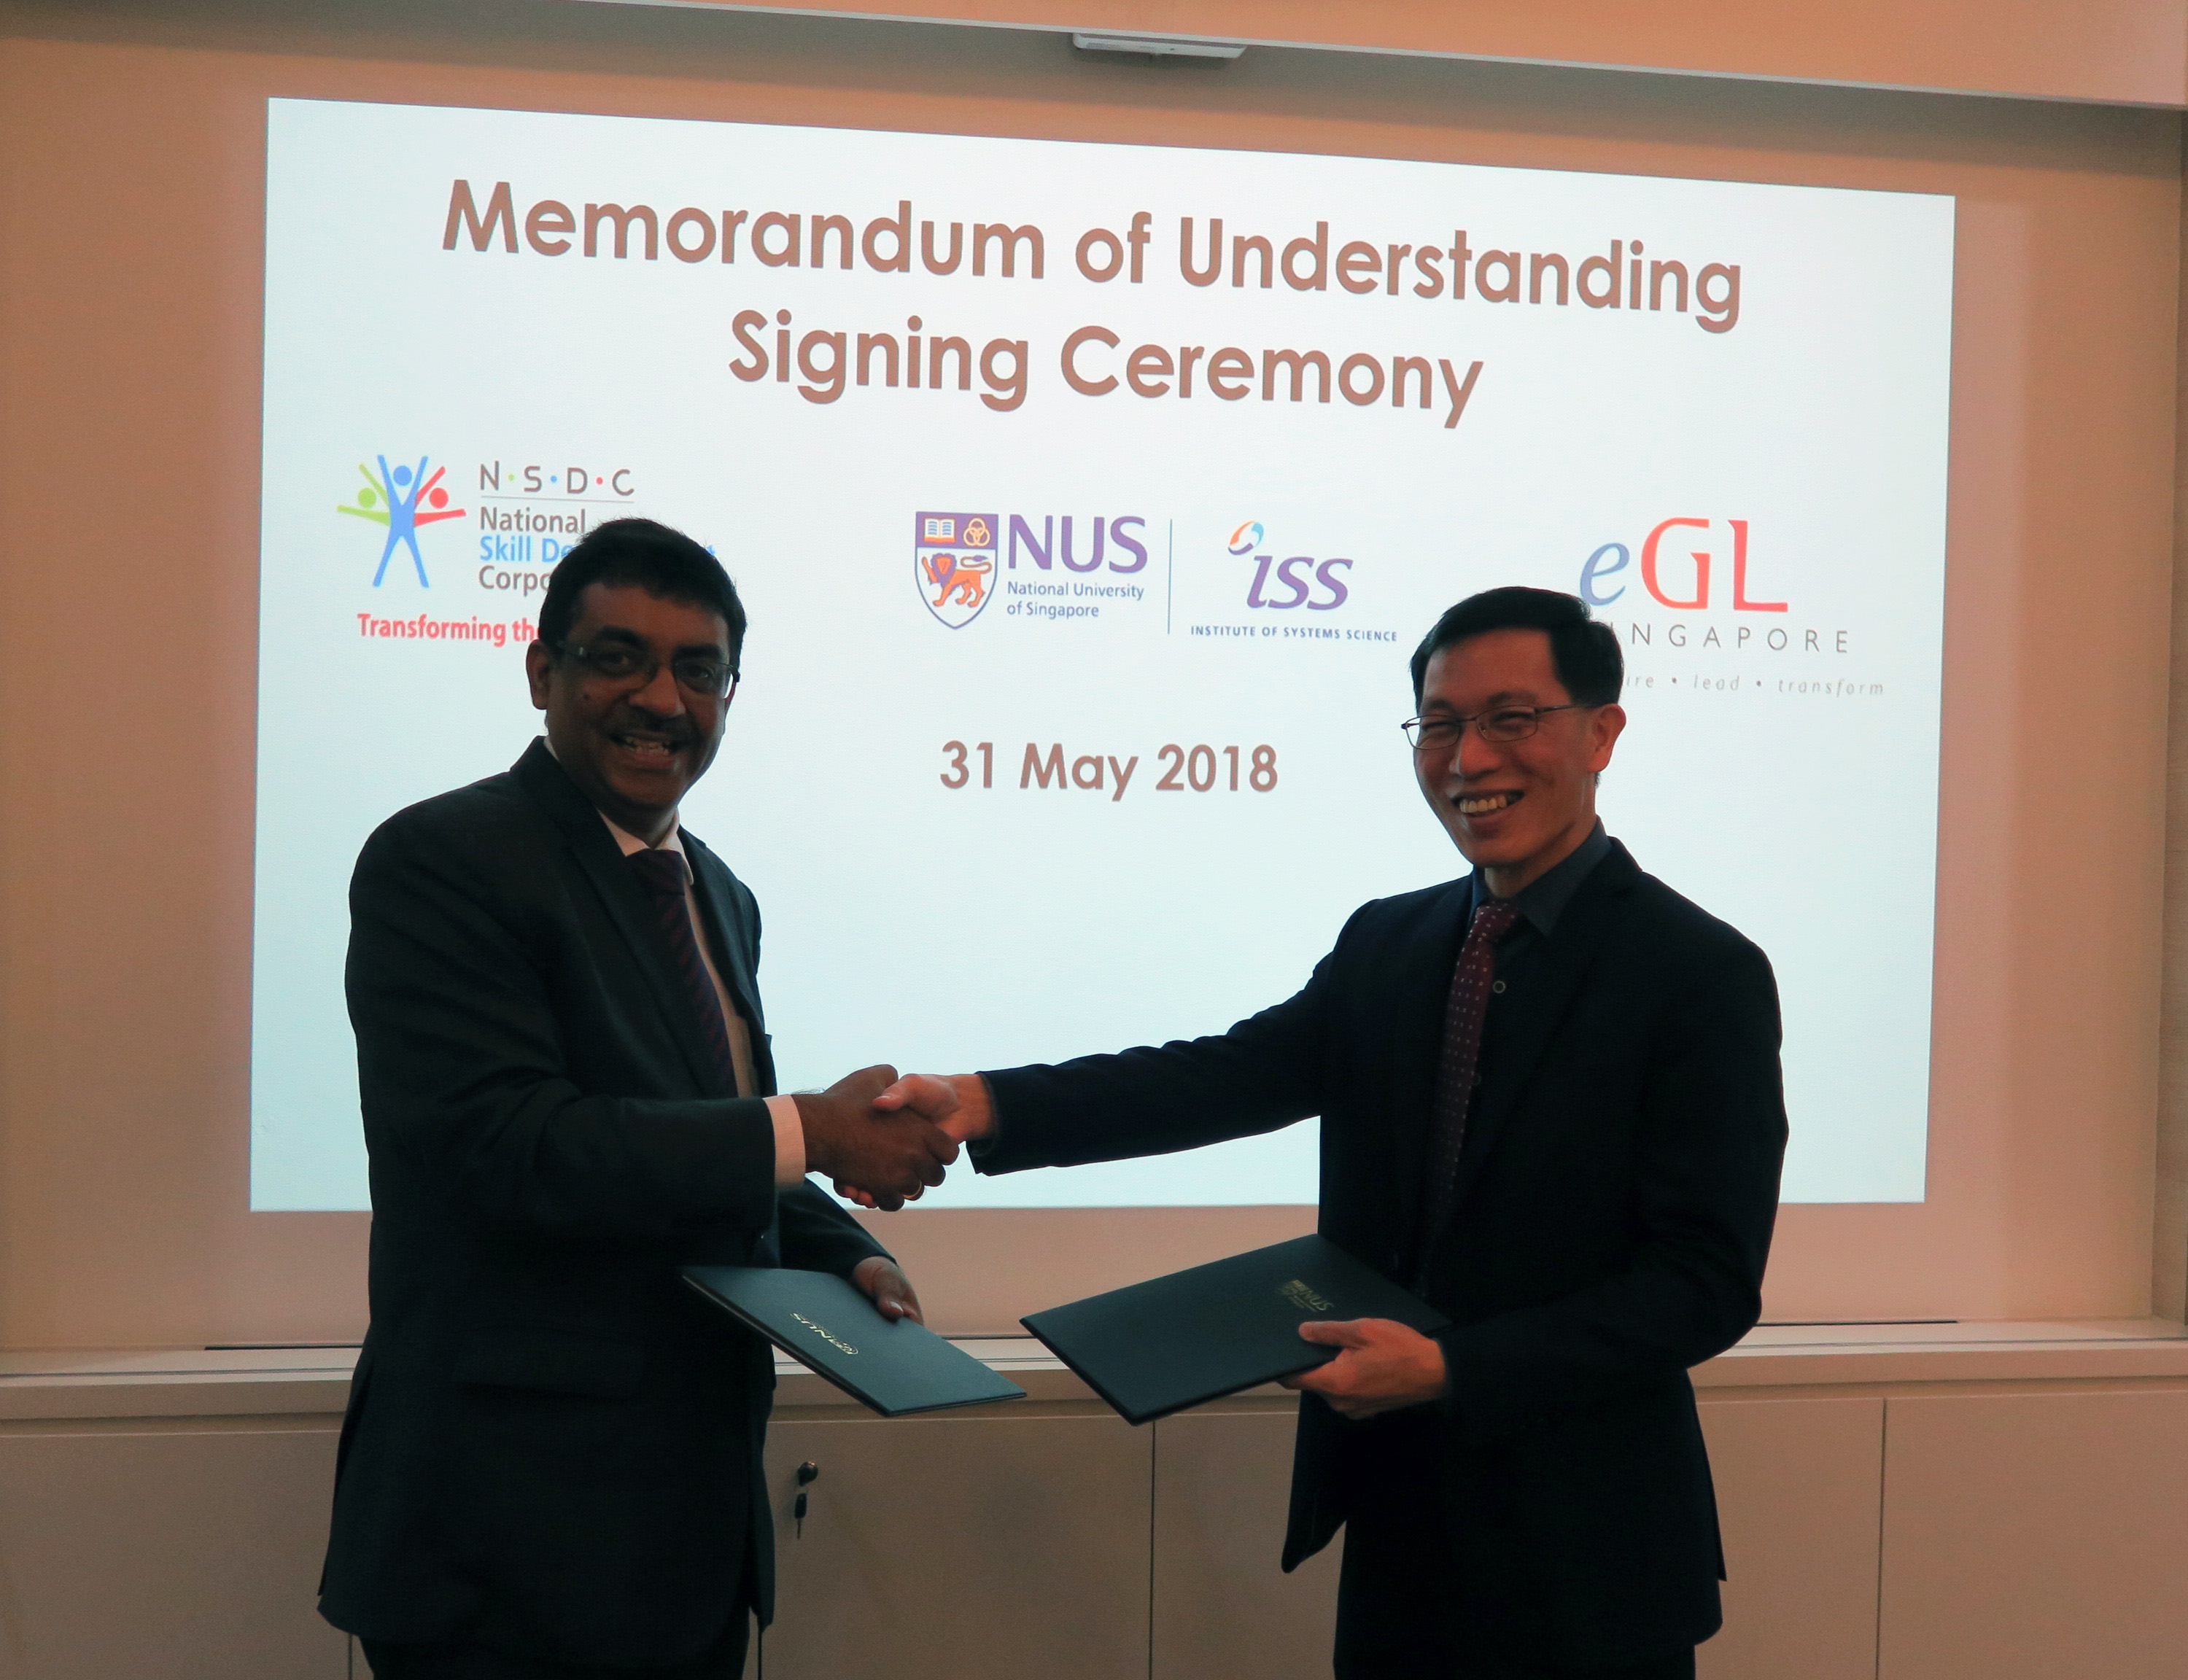 Singapore e-Government Leadership Centre at the NUS Institute of Systems Science to address skills gap in India